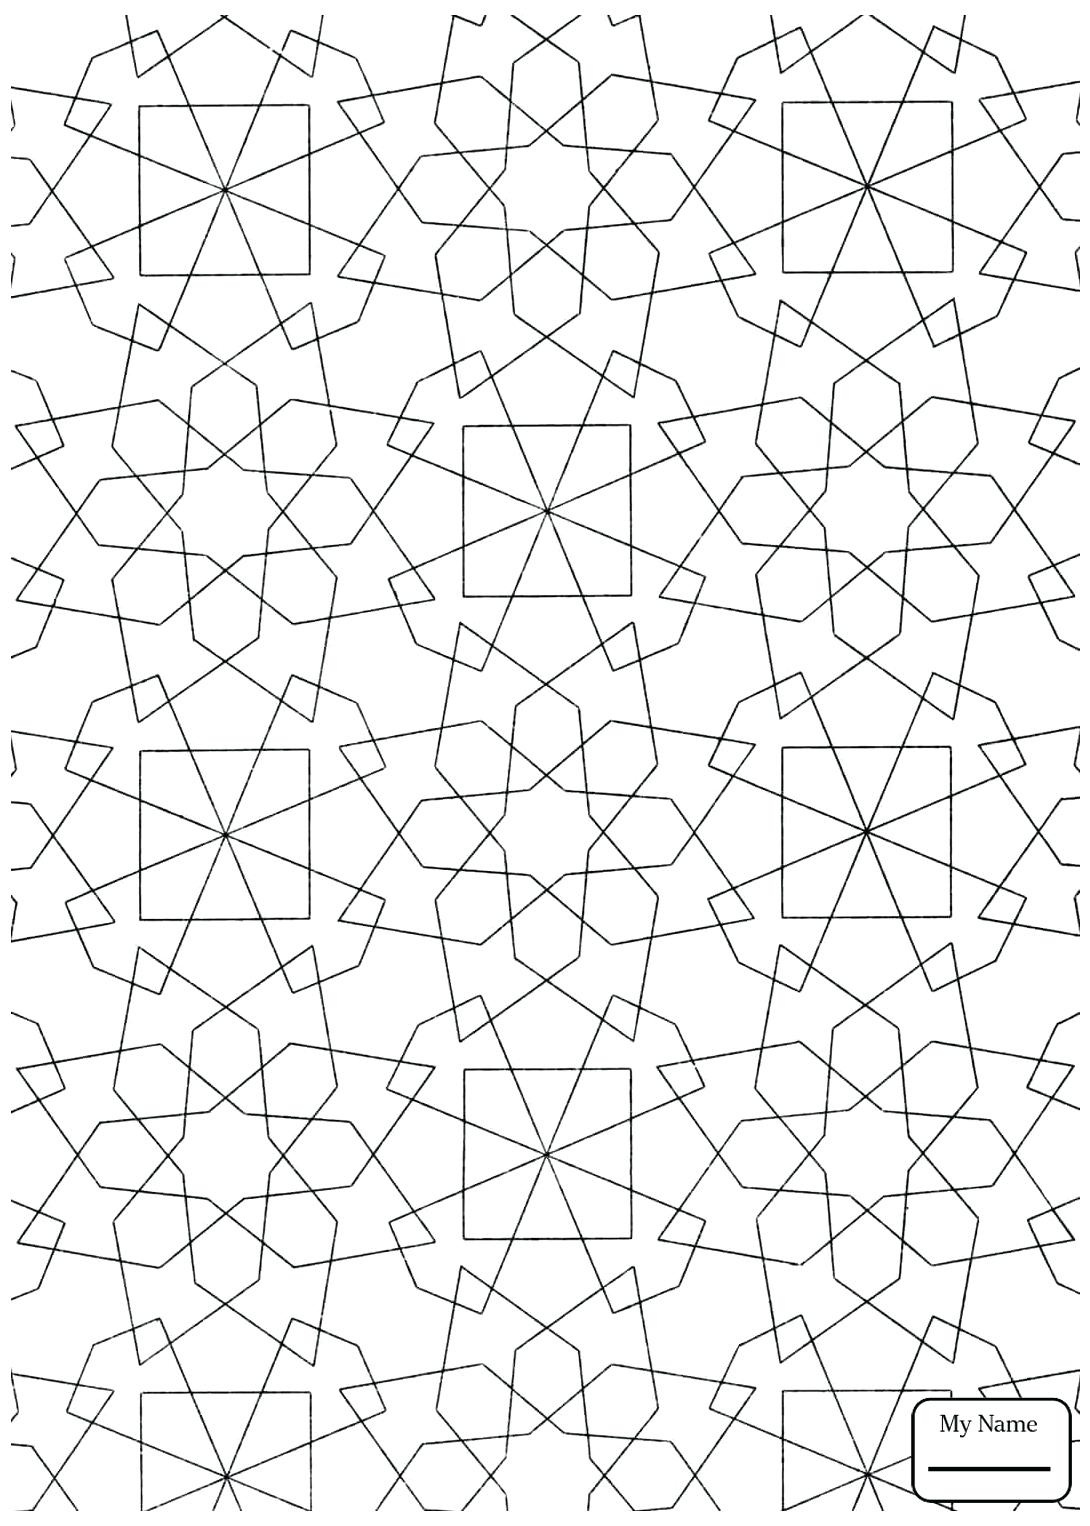 Tessellation drawing at free for for Mc escher tessellations coloring pages